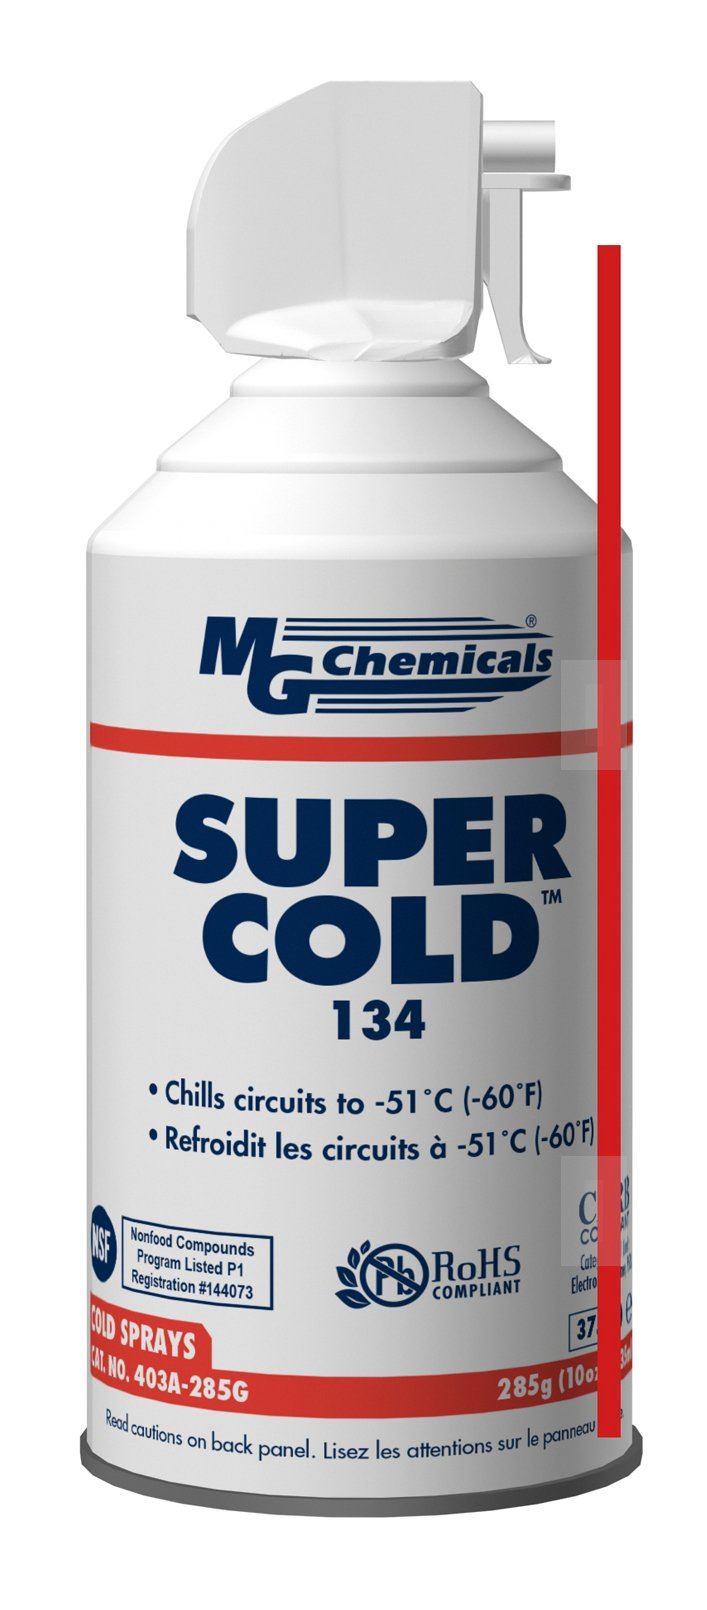 MG Chemicals 403A 134A Super Cold Spray, 285g (10 oz) Aerosol Can by MG Chemicals